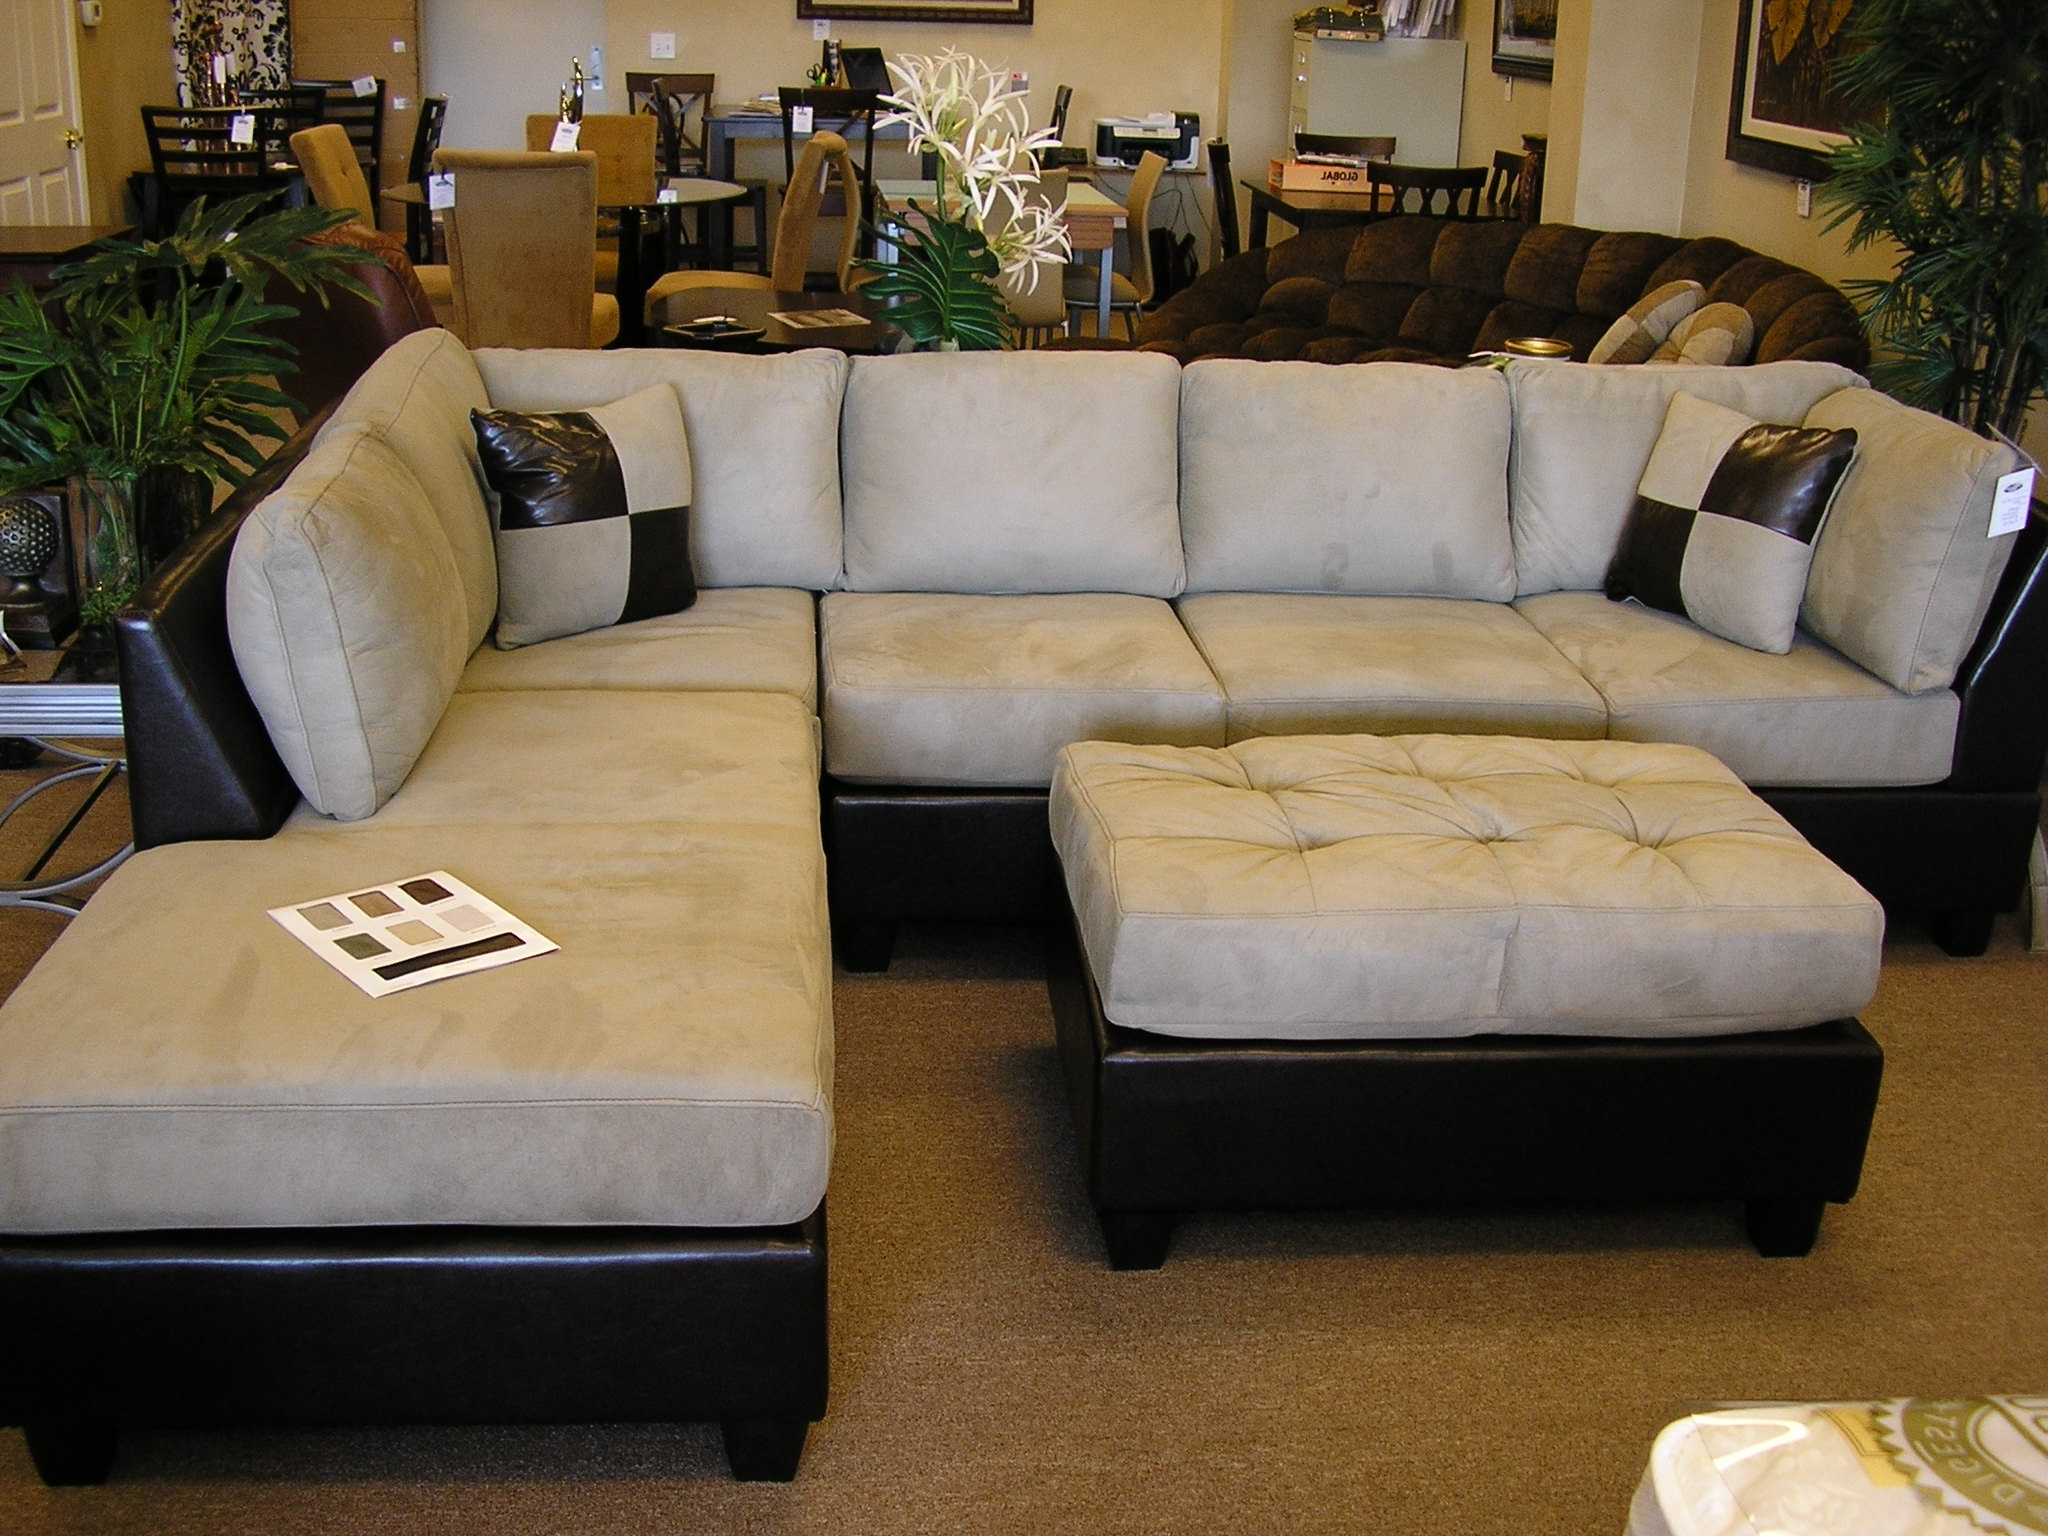 Latest Sectional Sofa Design: Beautiful Sectional Sofas With Chaise Pertaining To Reversible Chaise Sectionals (View 8 of 15)